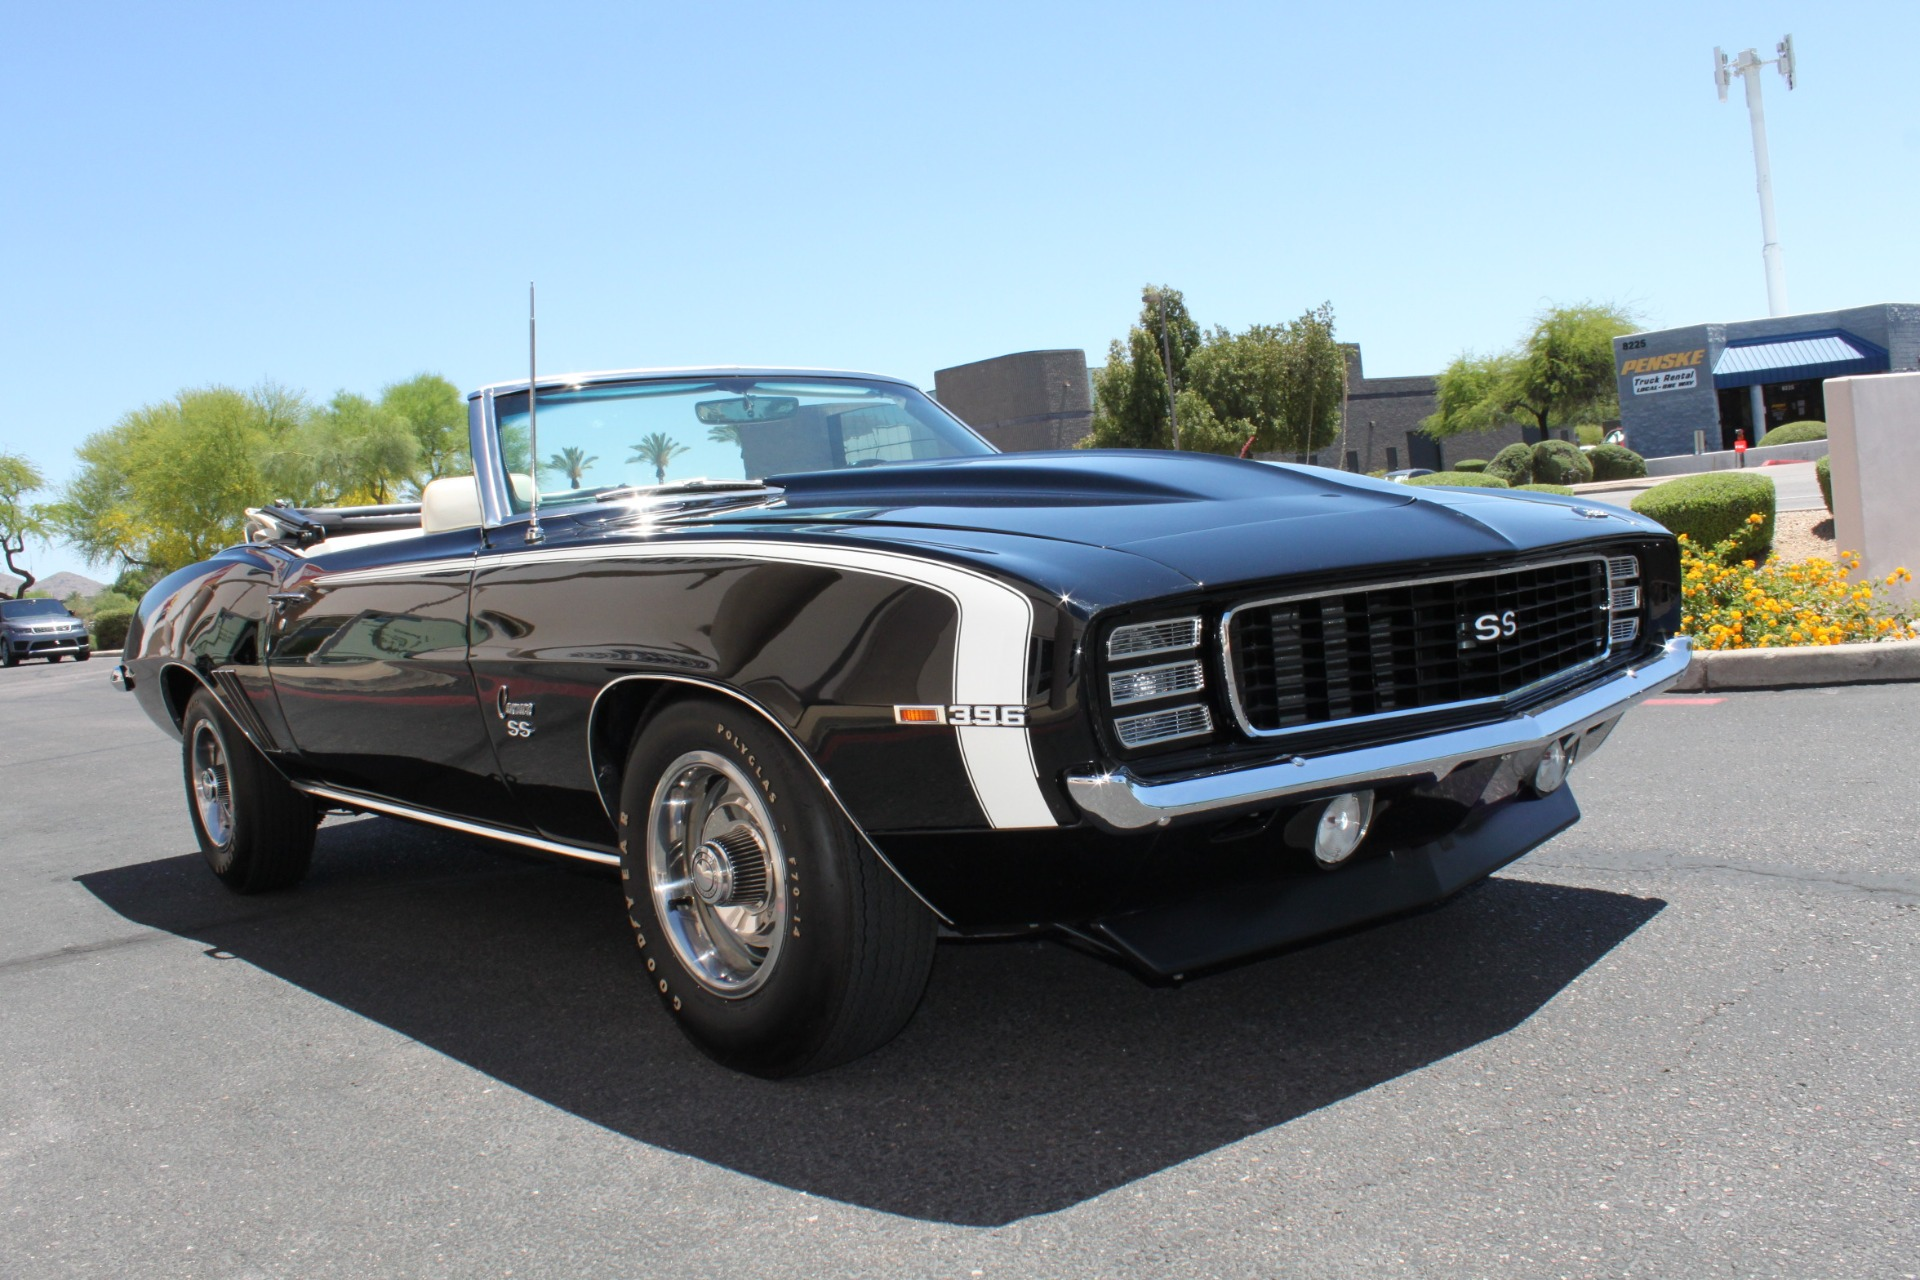 Used-1969-Chevrolet-Camaro-SS/RS-Convertible-vintage